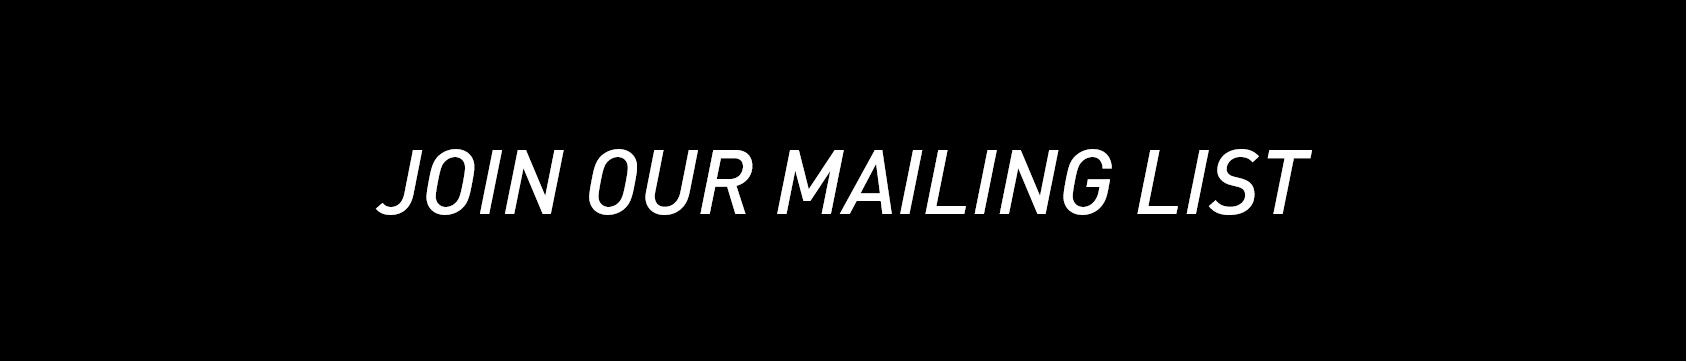 mailing list signup button